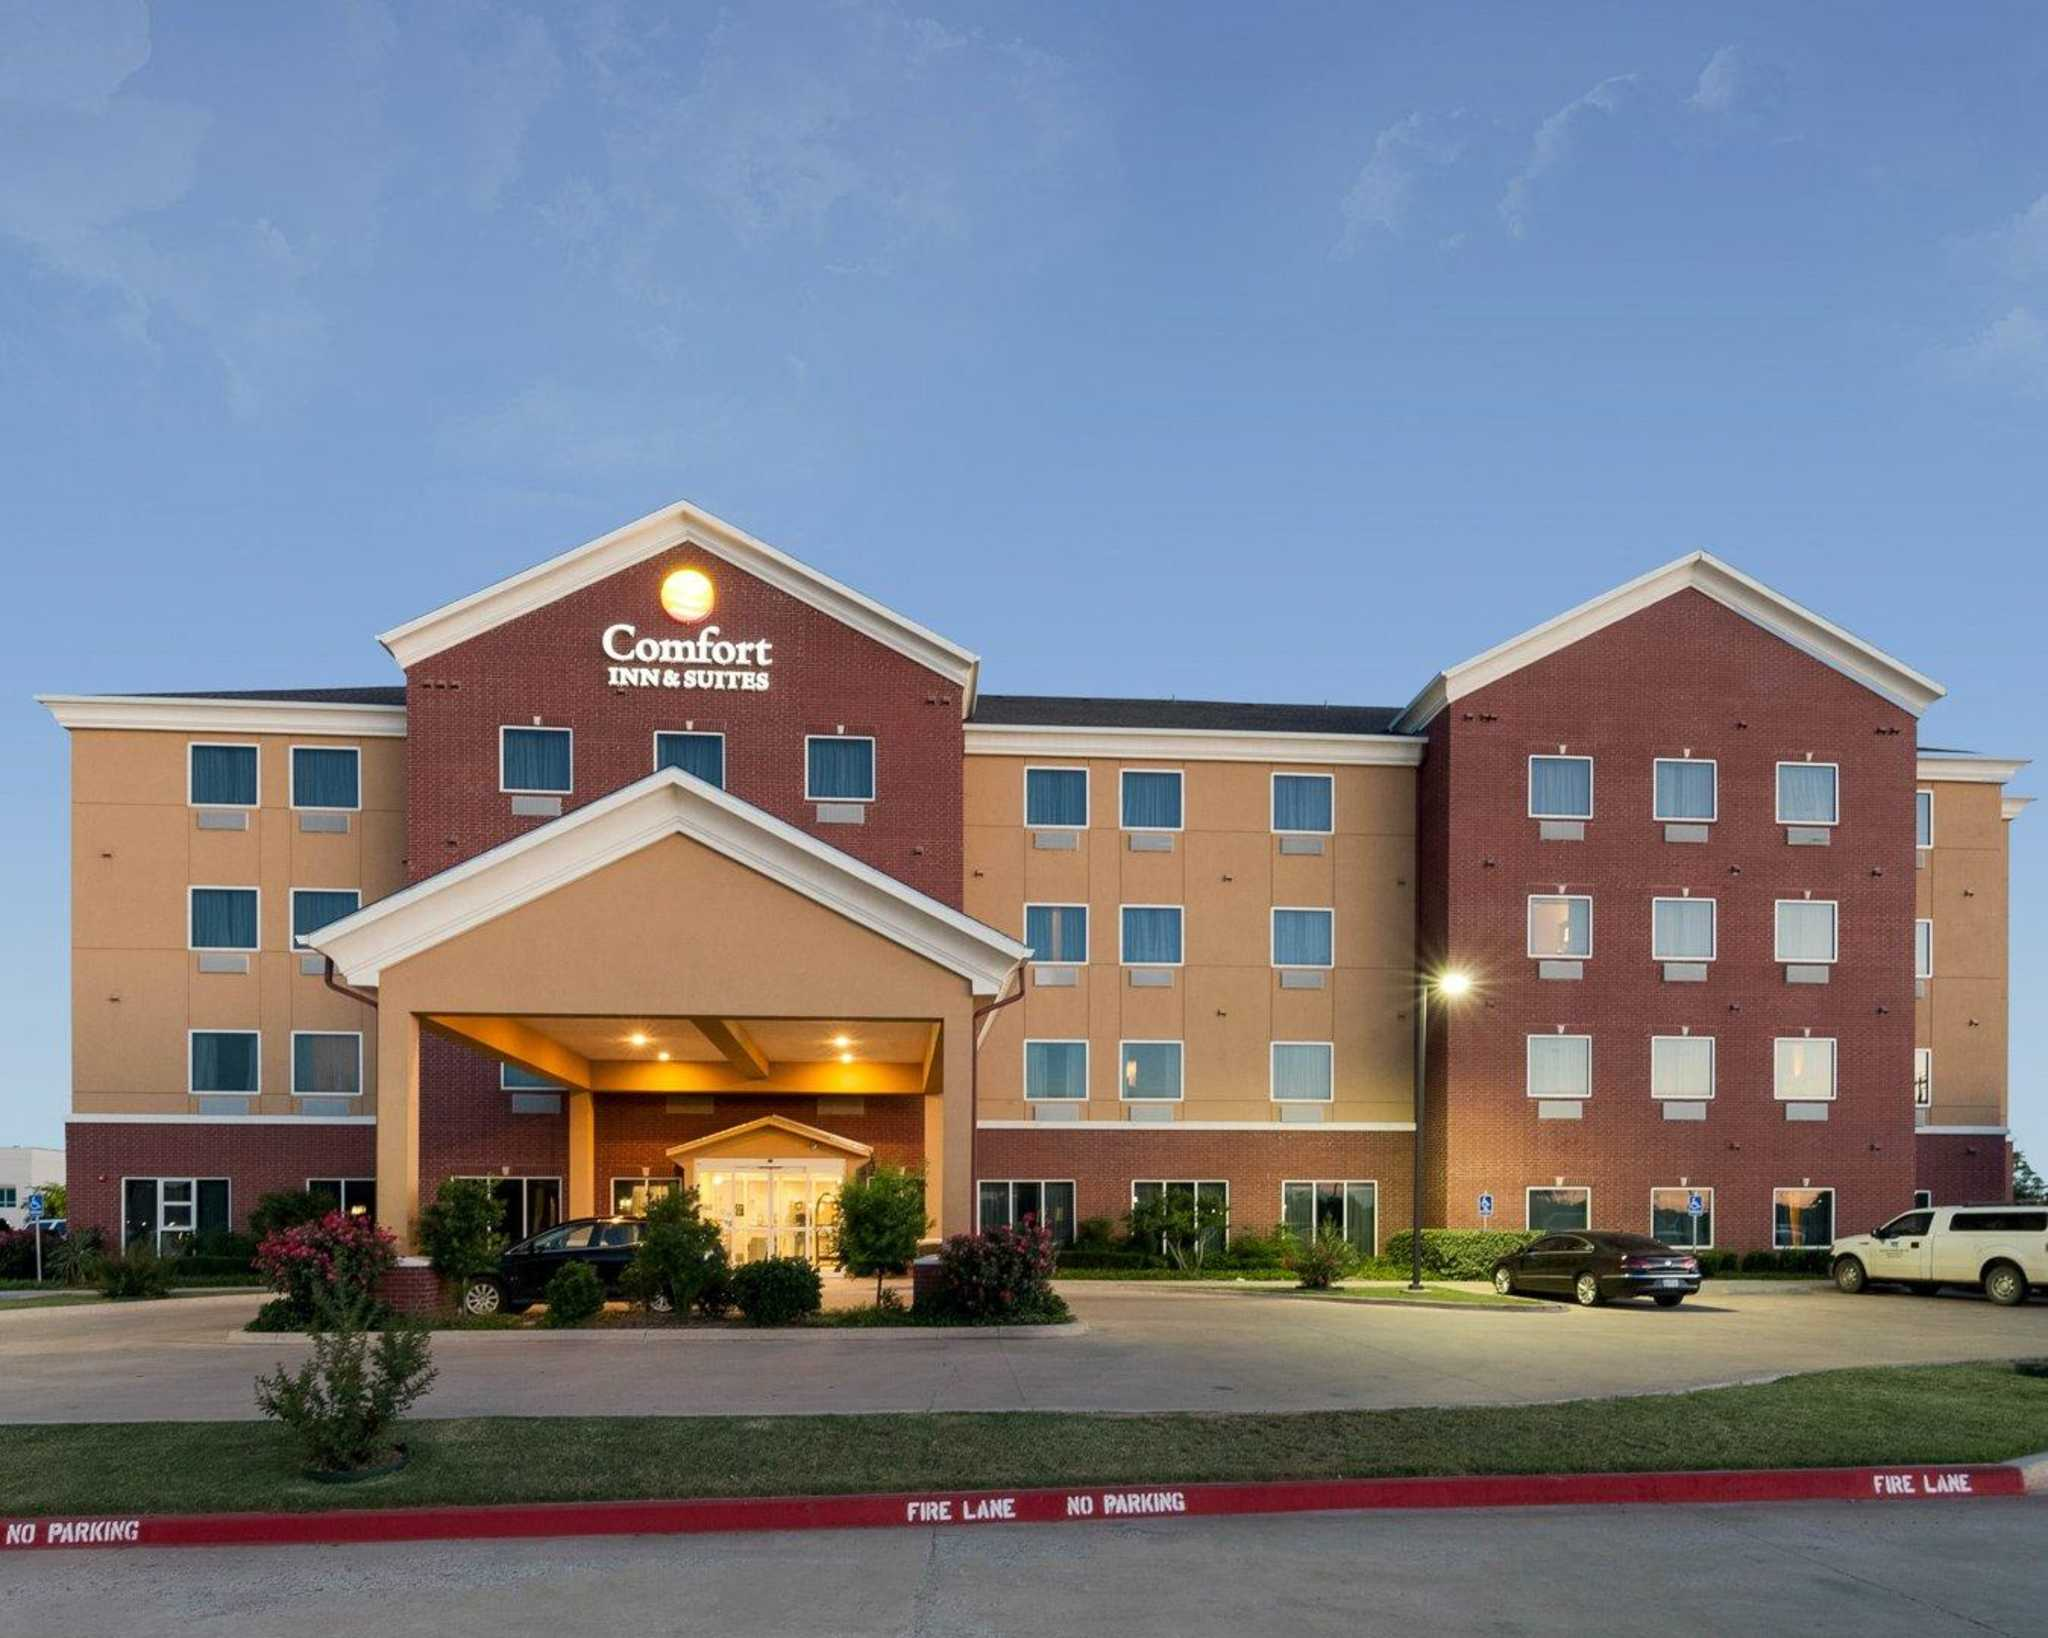 Comfort Inn & Suites Regional Medical Center image 2